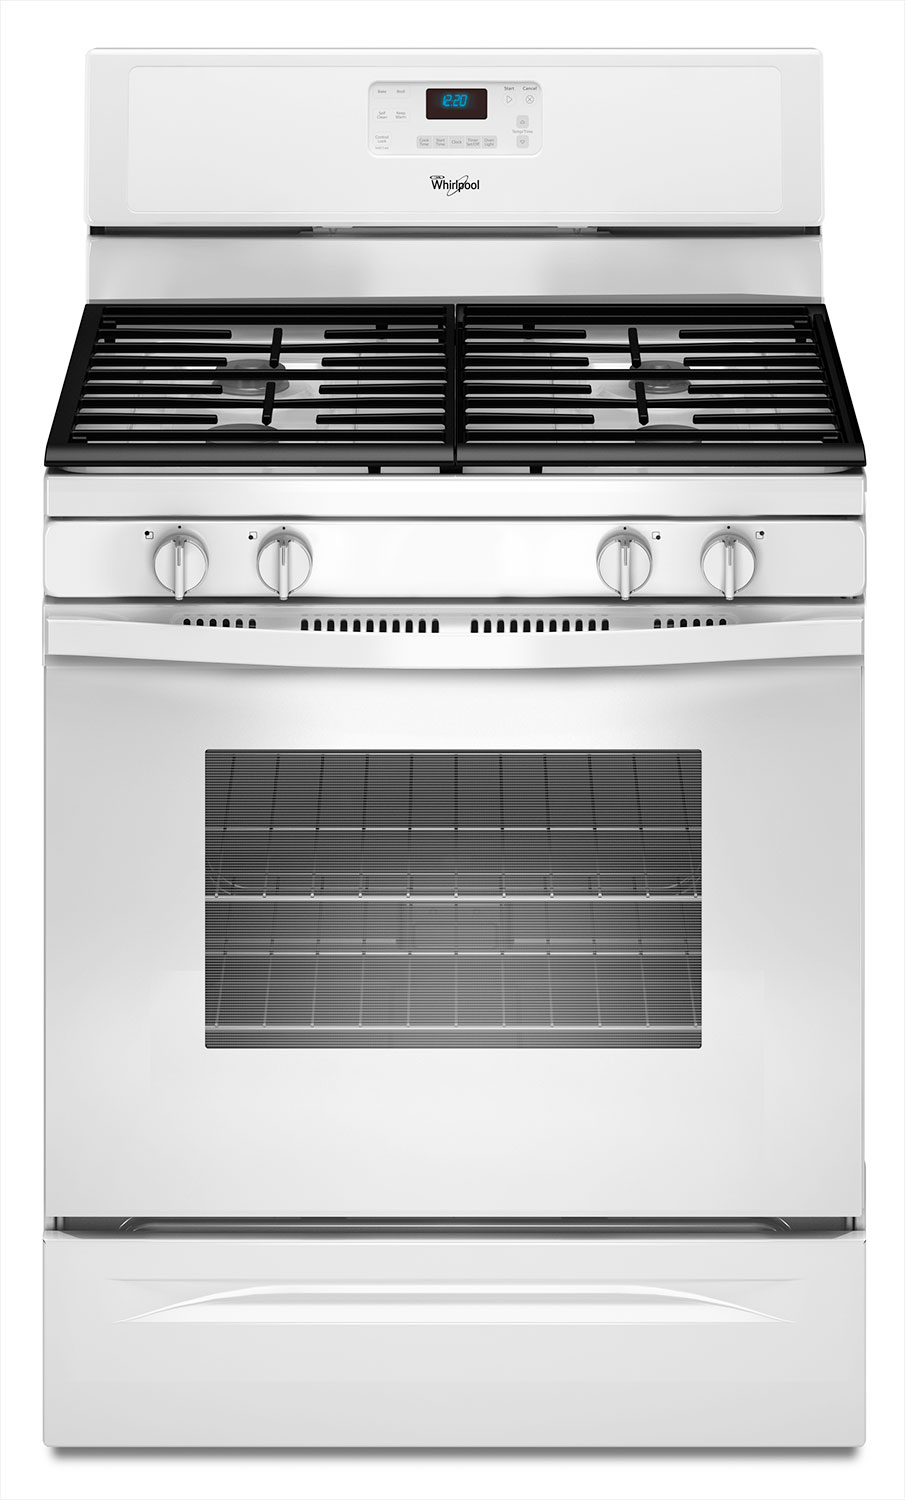 Cooking Products - Whirlpool White Freestanding Gas Range (5.0 Cu. Ft.) - WFG515S0EW